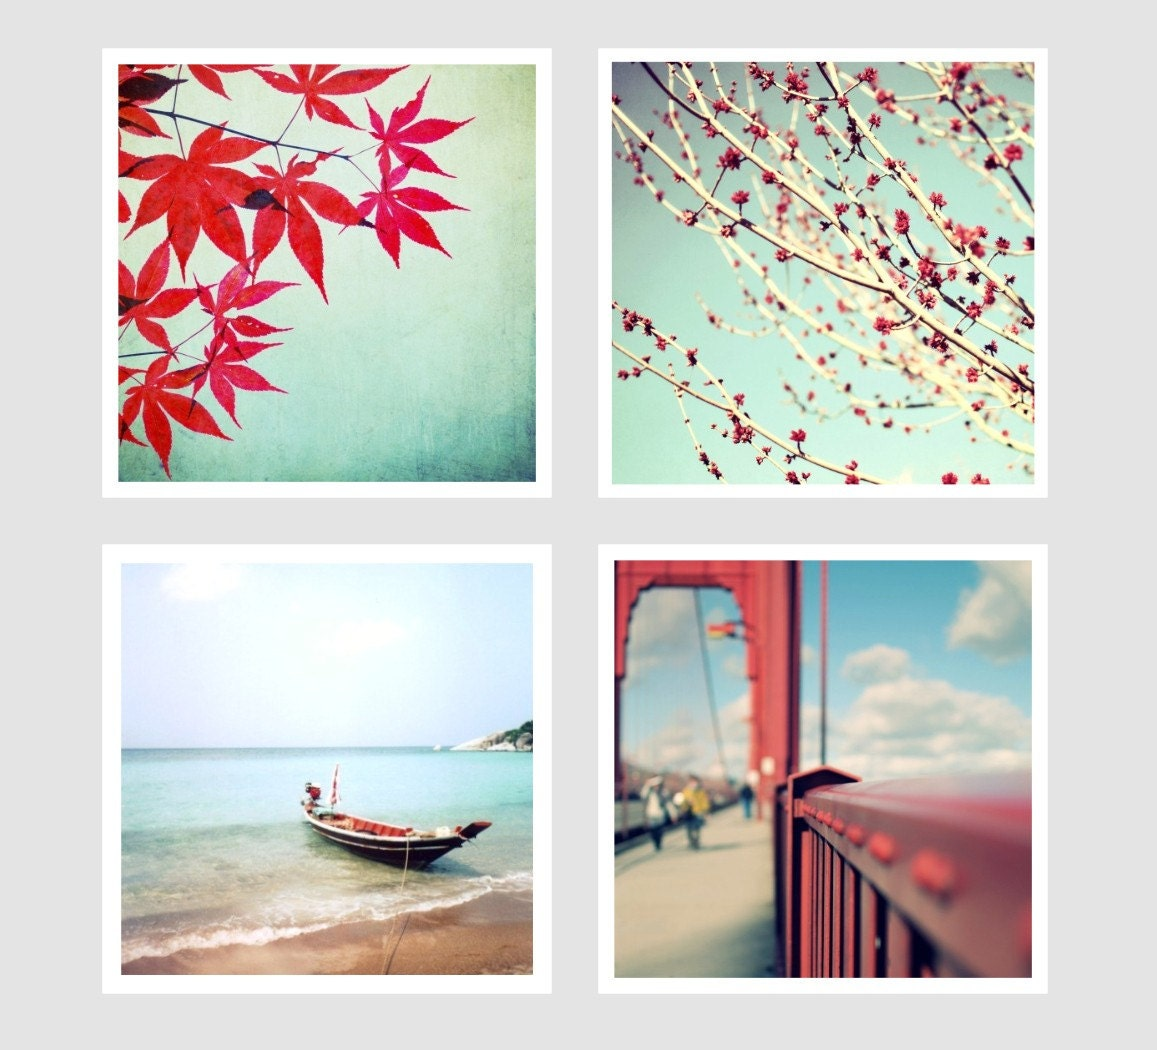 1000+ Images About Aqua, Teal, Turquoise And Just Plain